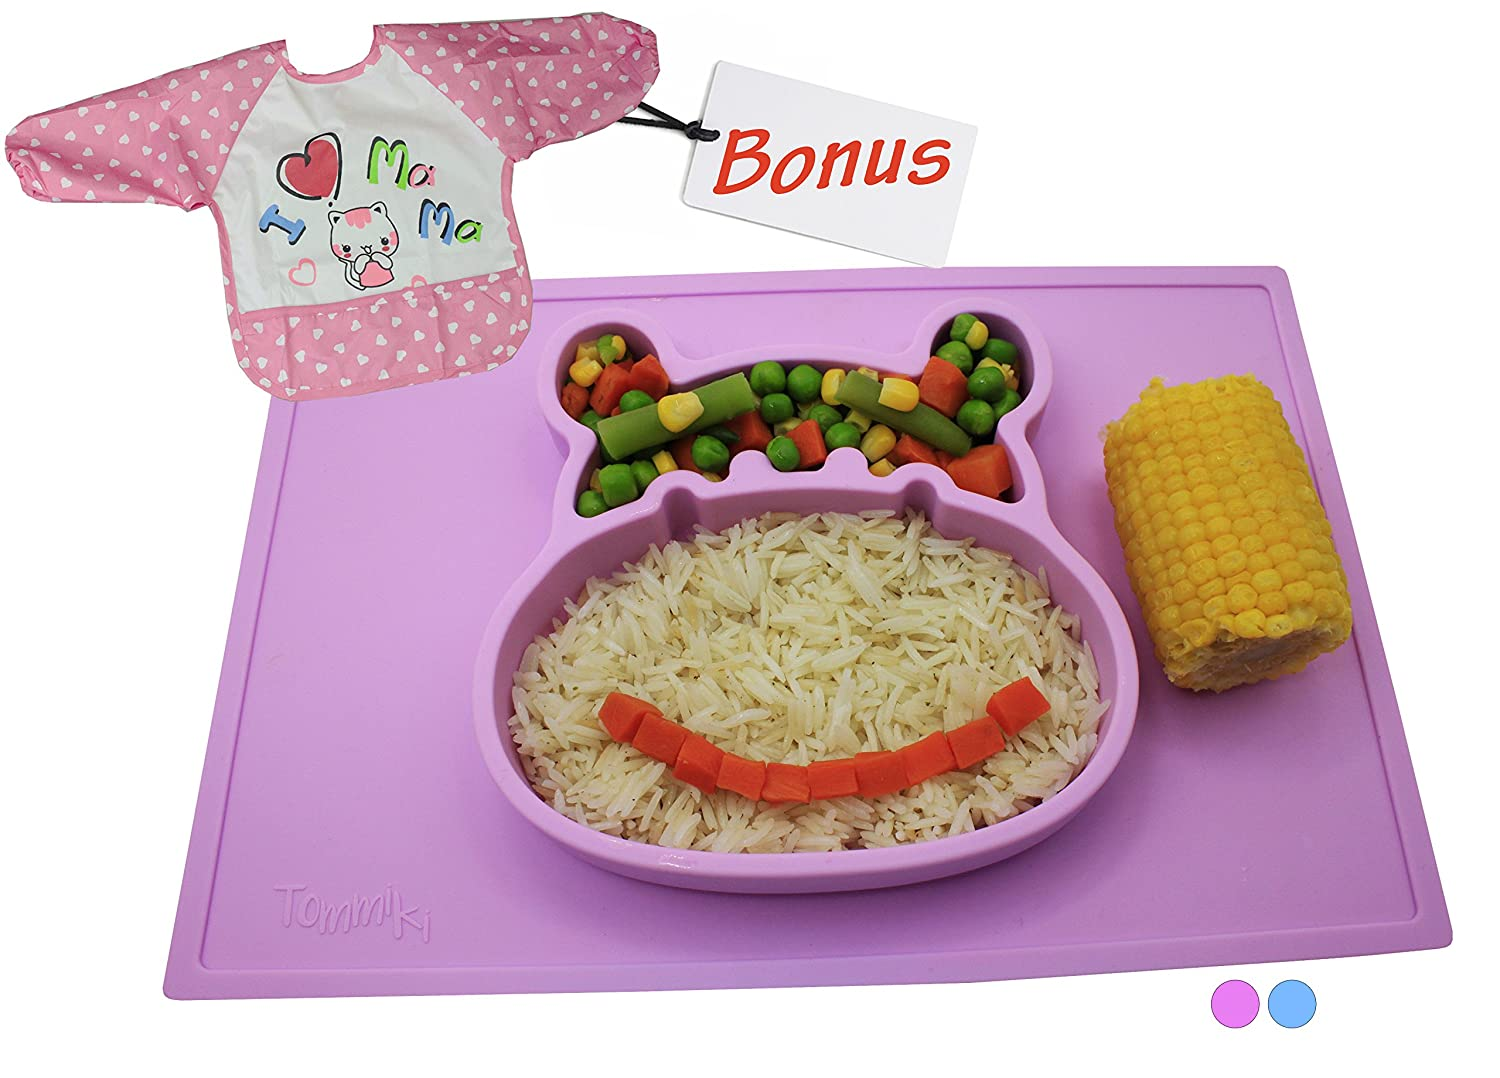 Baby Silicone Placemat for Toddlers and Kids Heat Resistant One-Piece Hippo Feeding Plate/Bowl Designed to Suction & Fit All Chairs and Trays & Matching Bib with Sleeves (Pink)-12 Month Warranty Tommiki